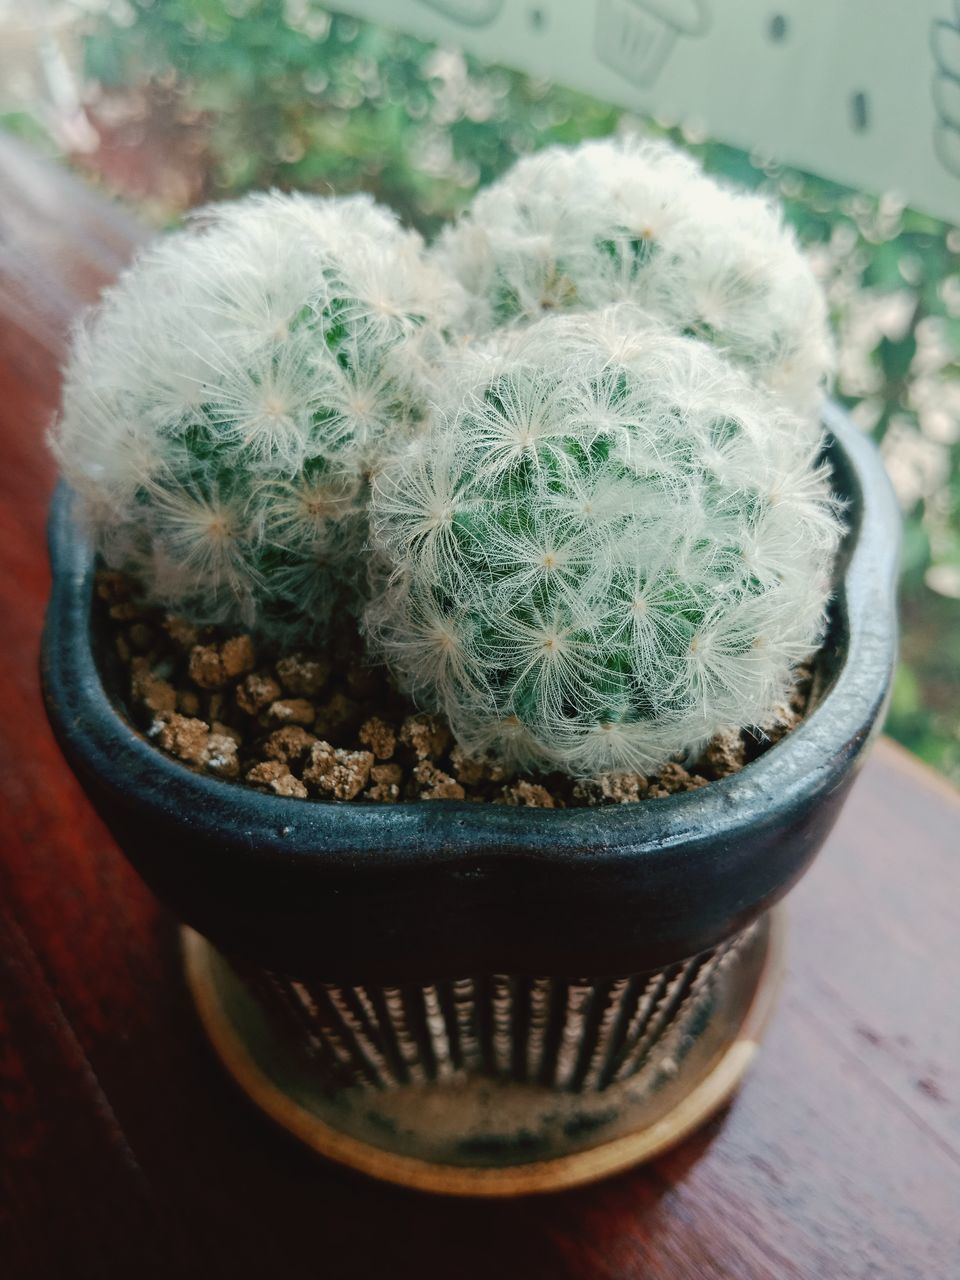 potted plant, plant, succulent plant, no people, growth, cactus, close-up, high angle view, nature, flower pot, focus on foreground, day, thorn, pot, indoors, beauty in nature, table, green color, container, freshness, houseplant